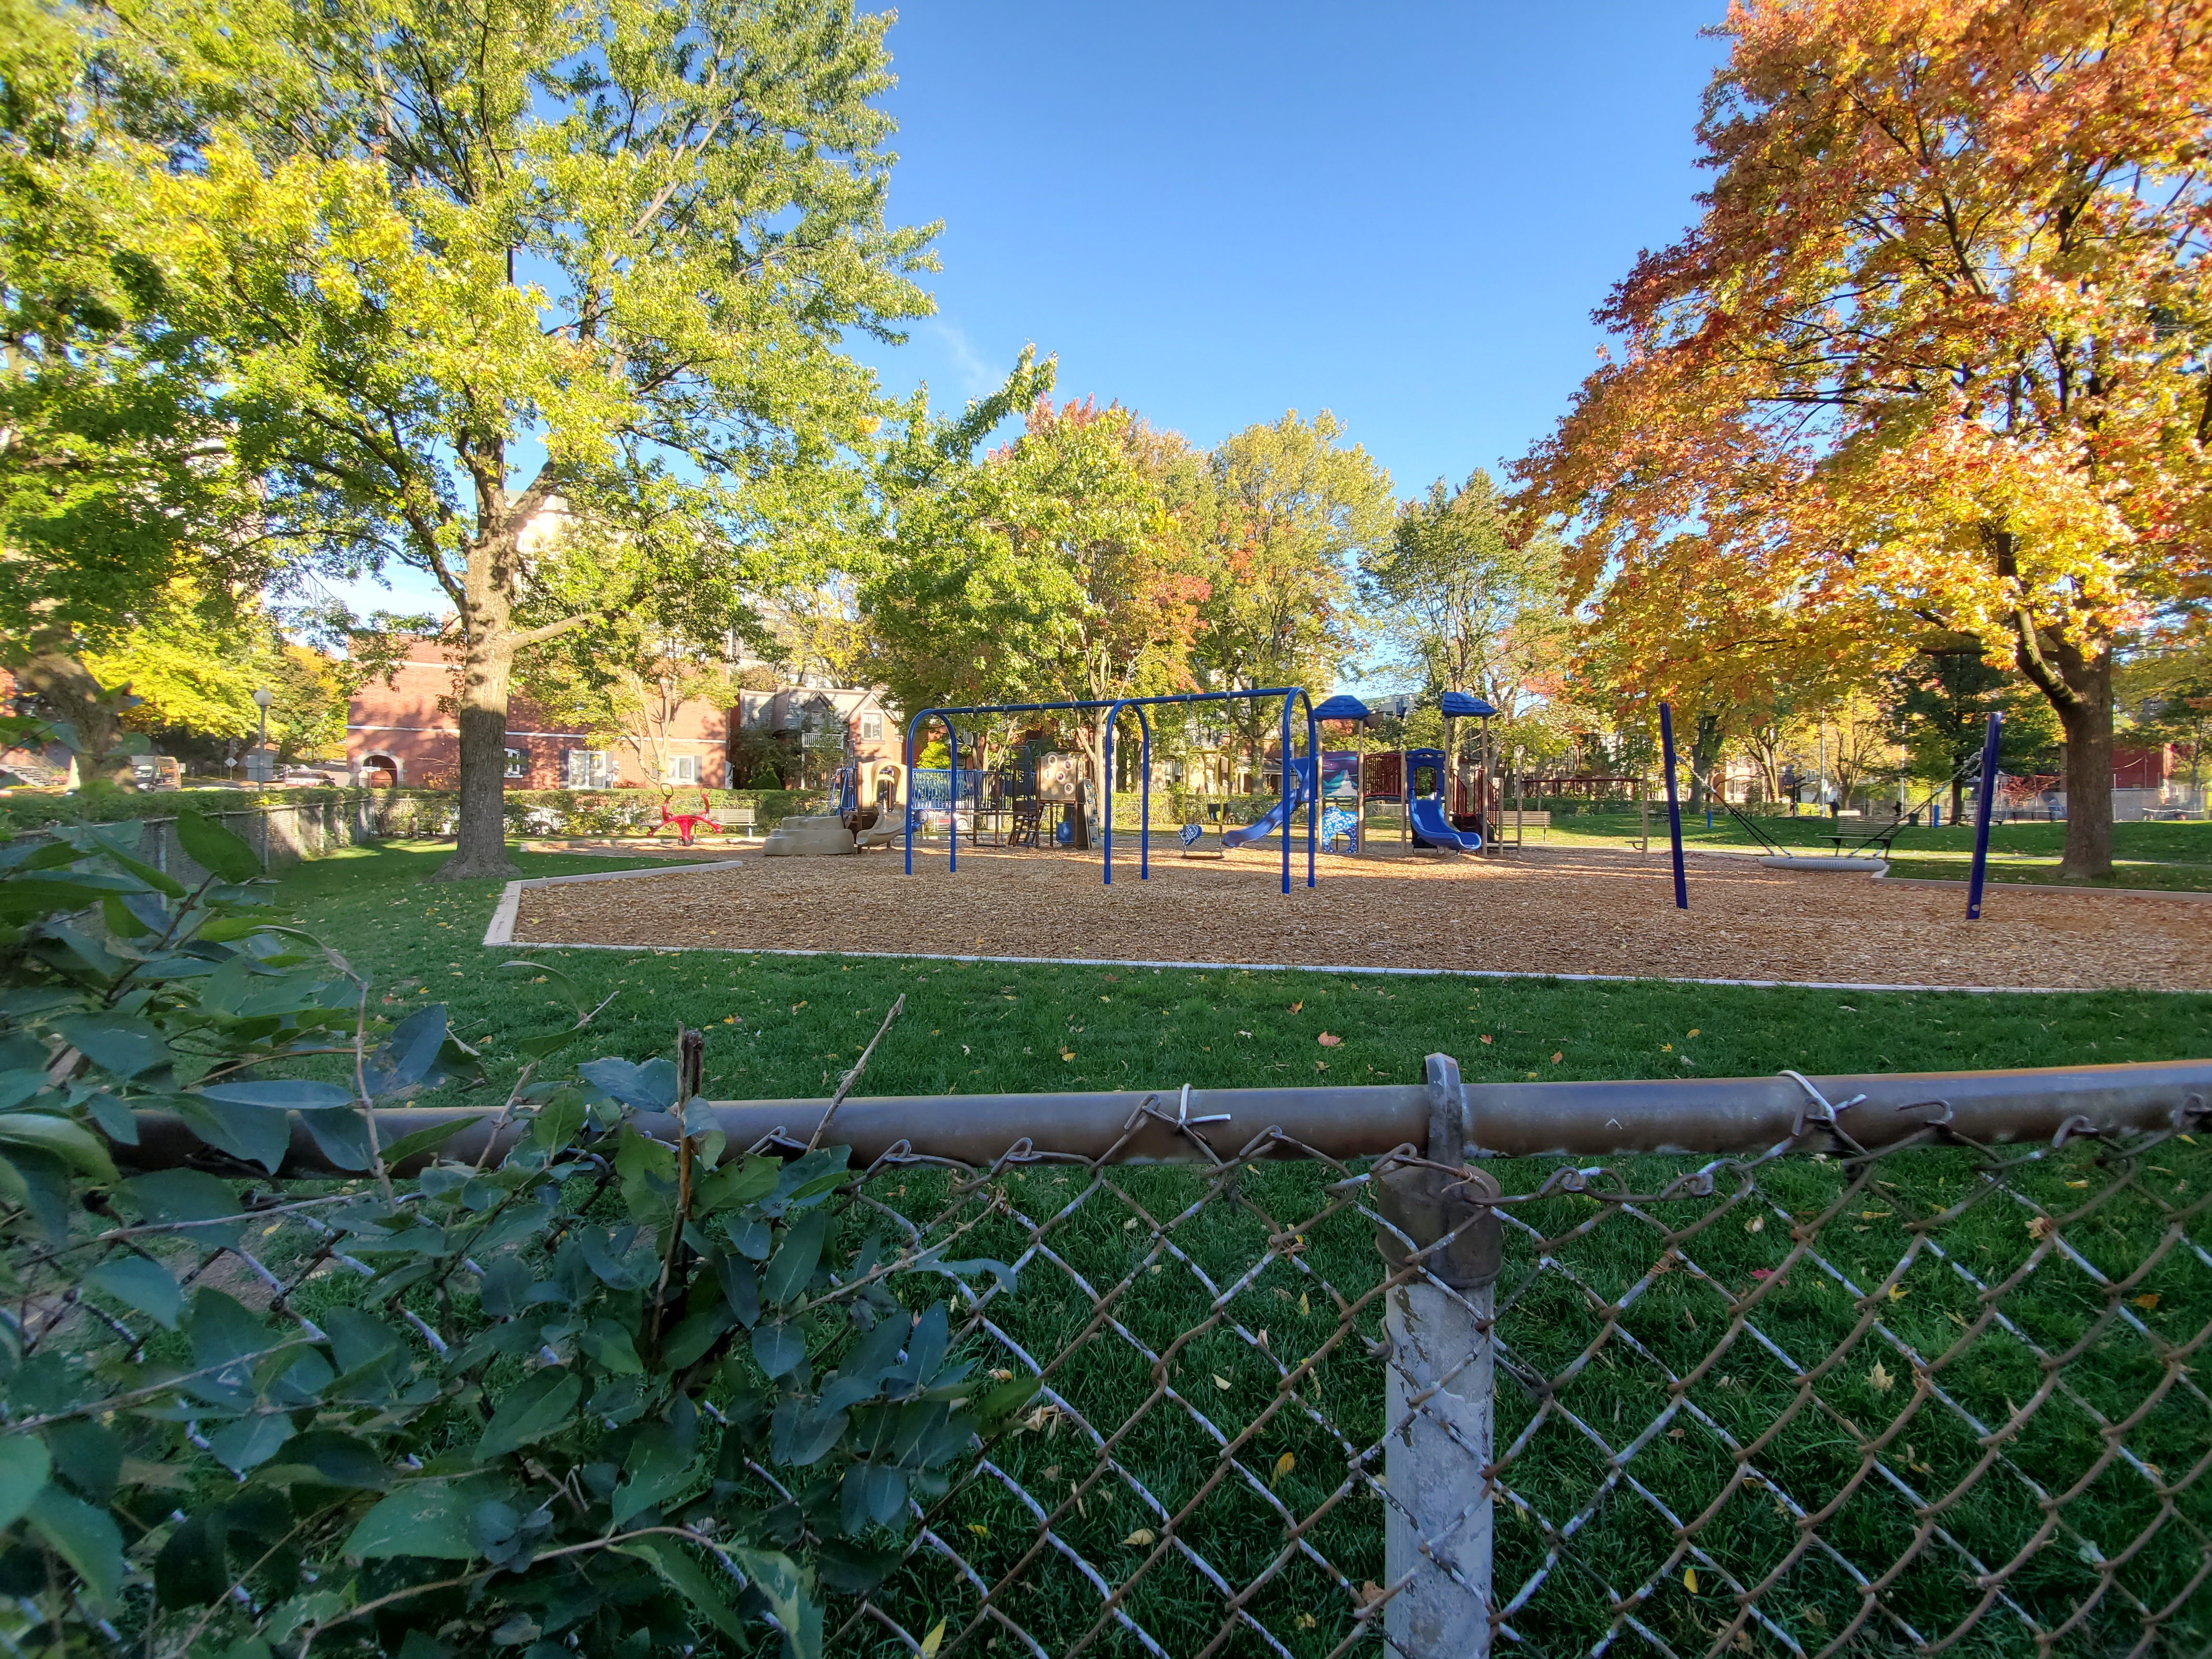 A view of the swings and slide at Stayner Park